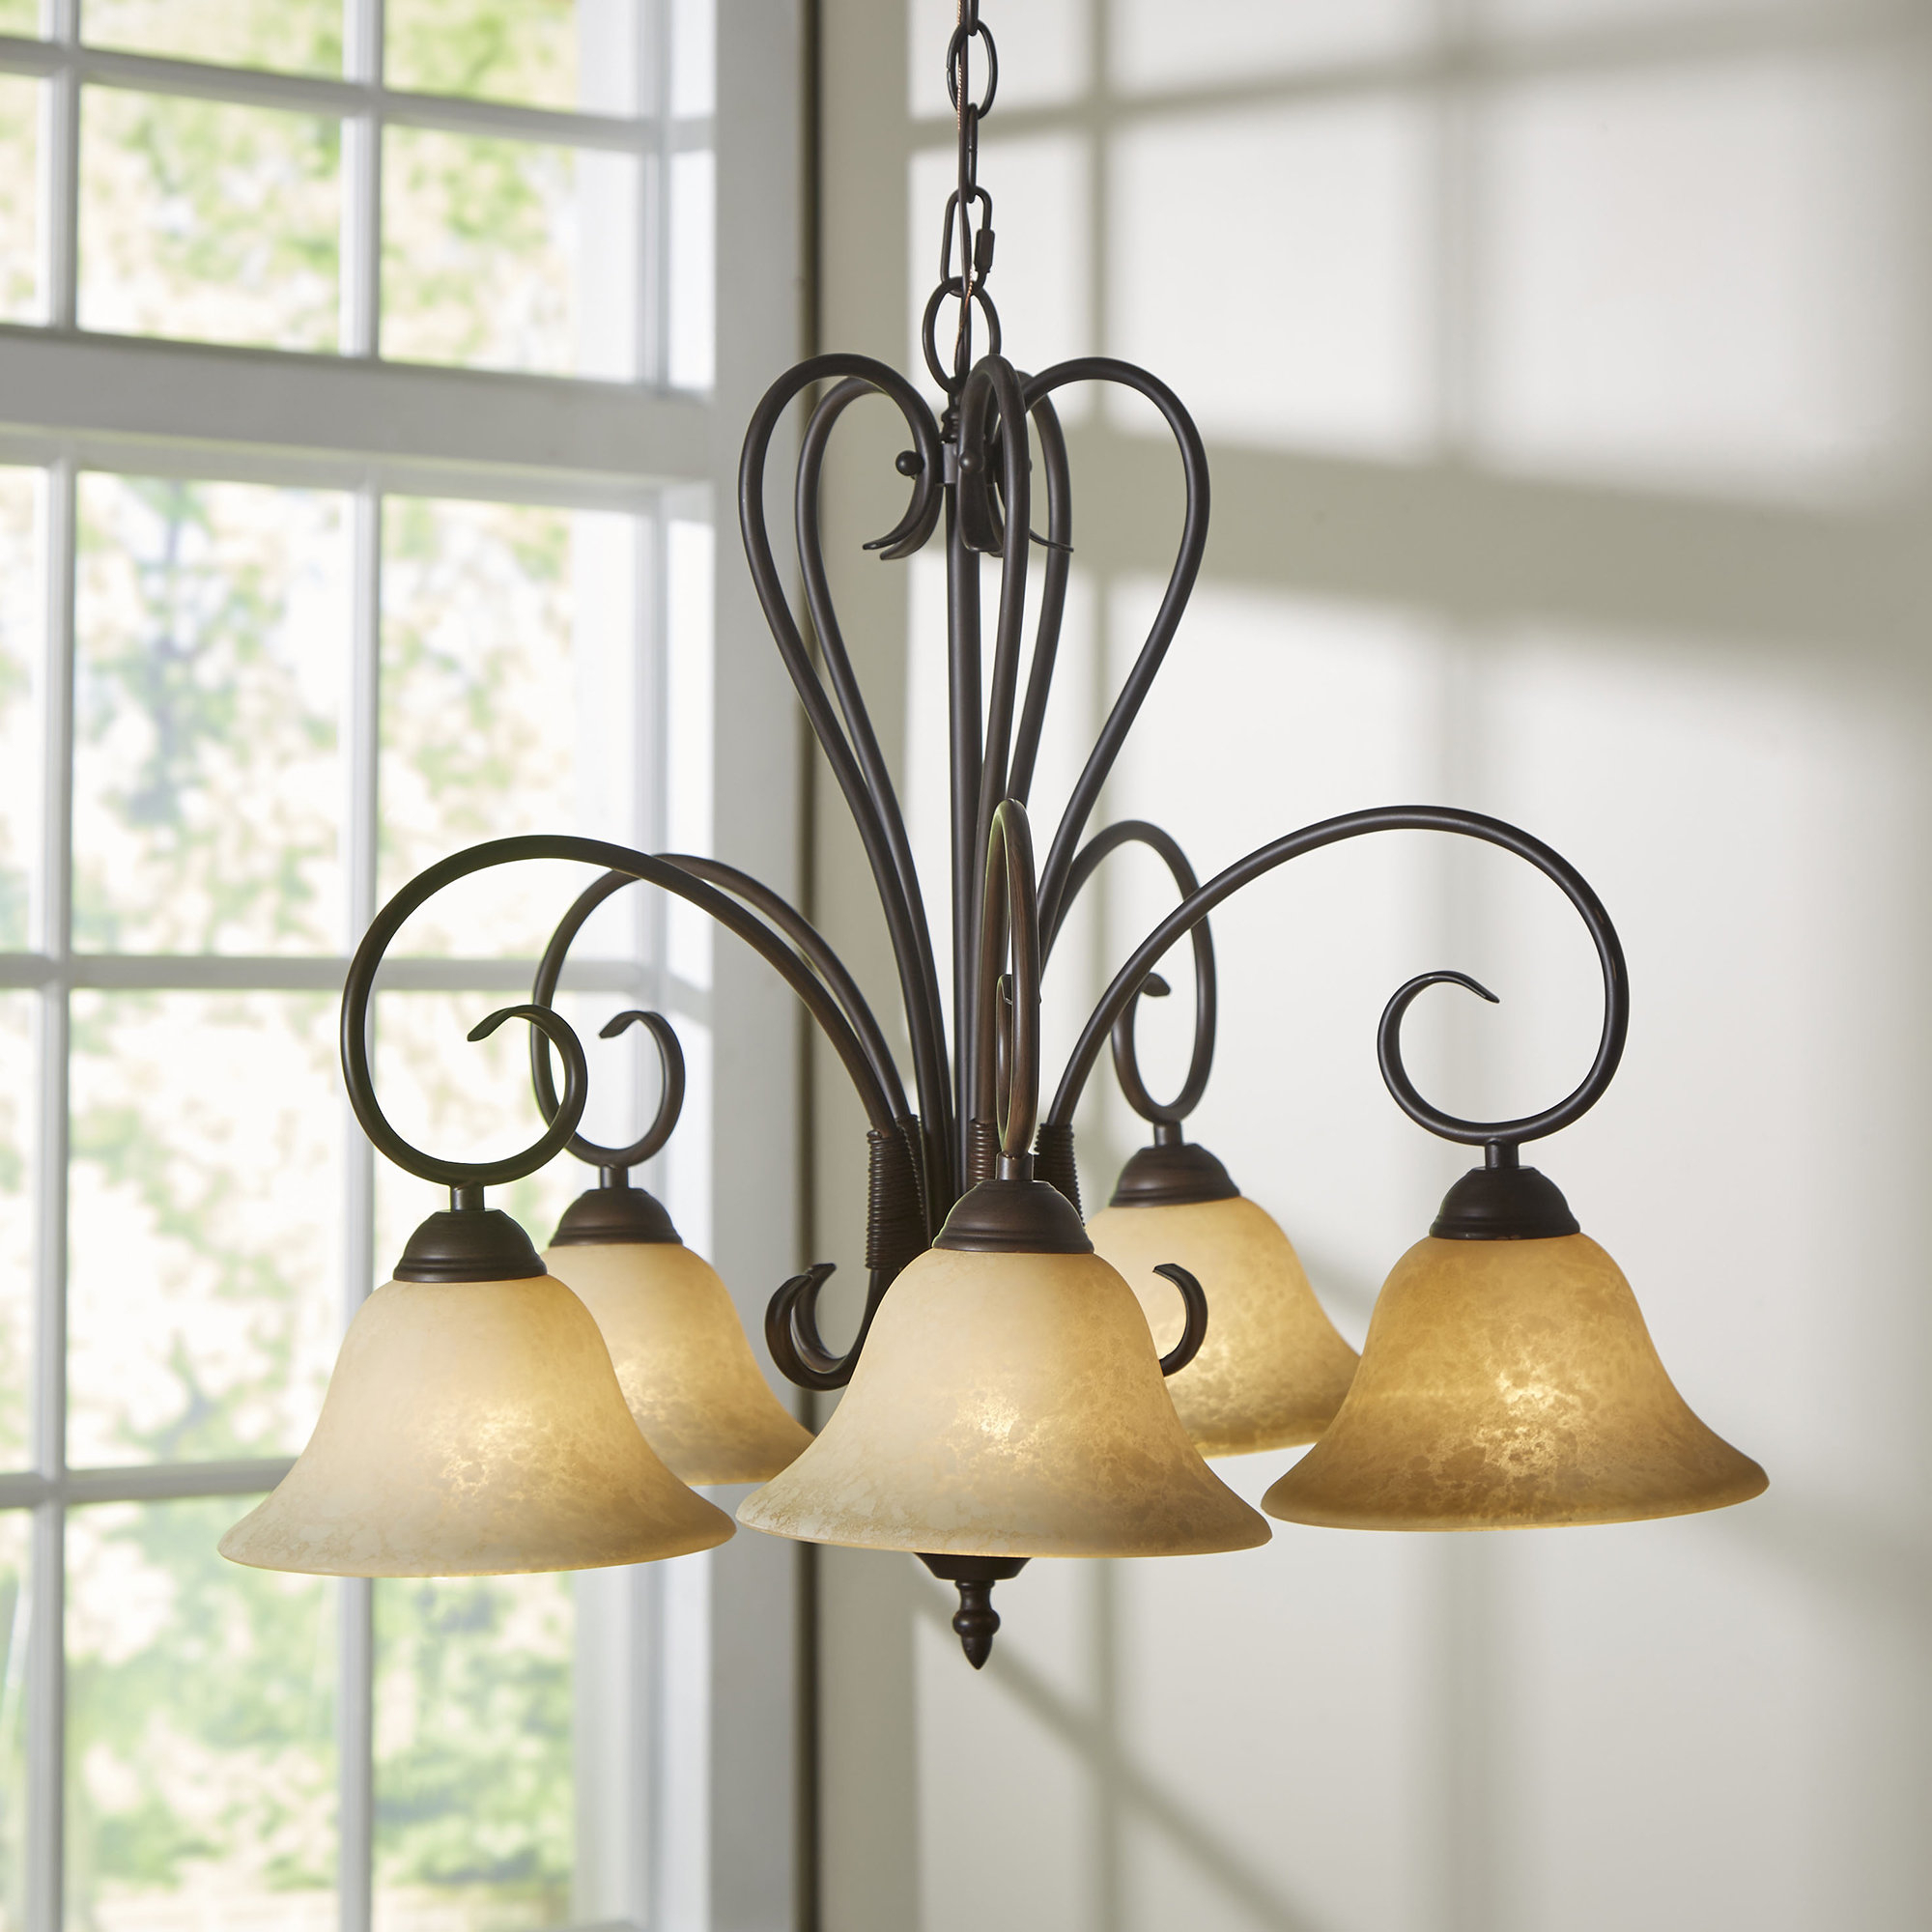 Gaines 5 Light Shaded Chandelier With Regard To Newent 5 Light Shaded Chandeliers (View 16 of 30)